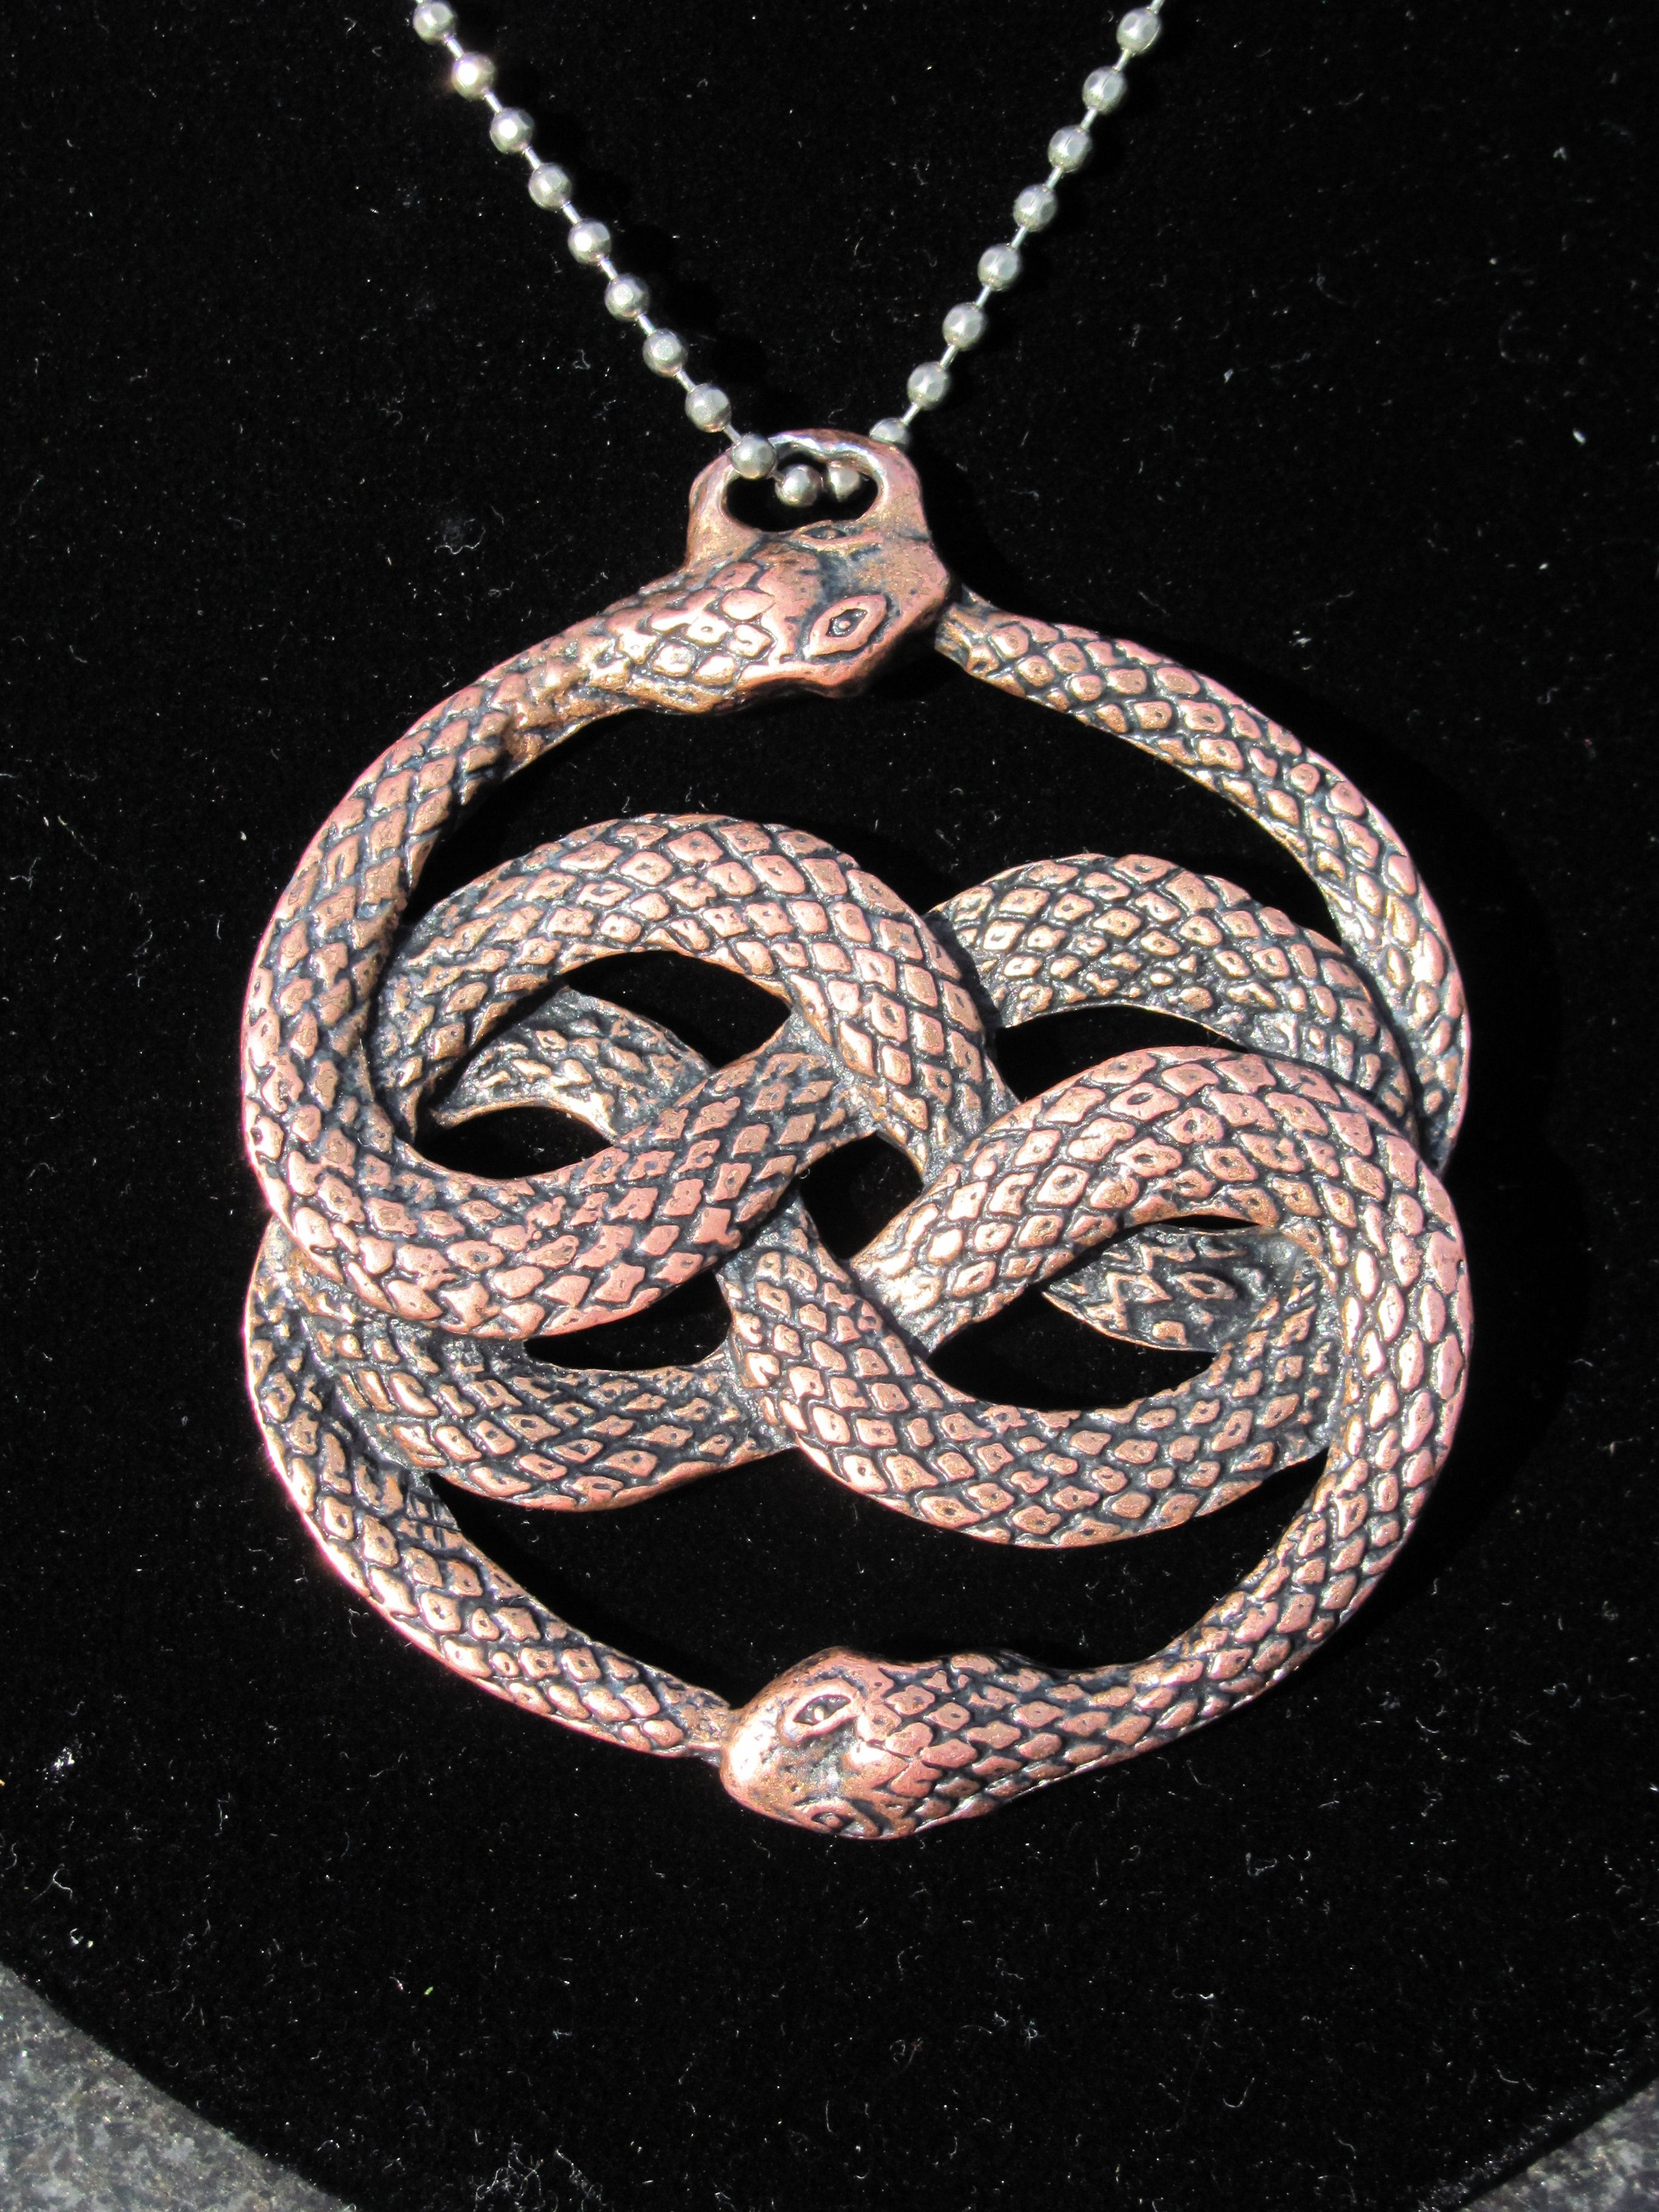 Auryn necklace replica from never ending story arsenic butterfly auryn necklace replica from never ending story mozeypictures Choice Image